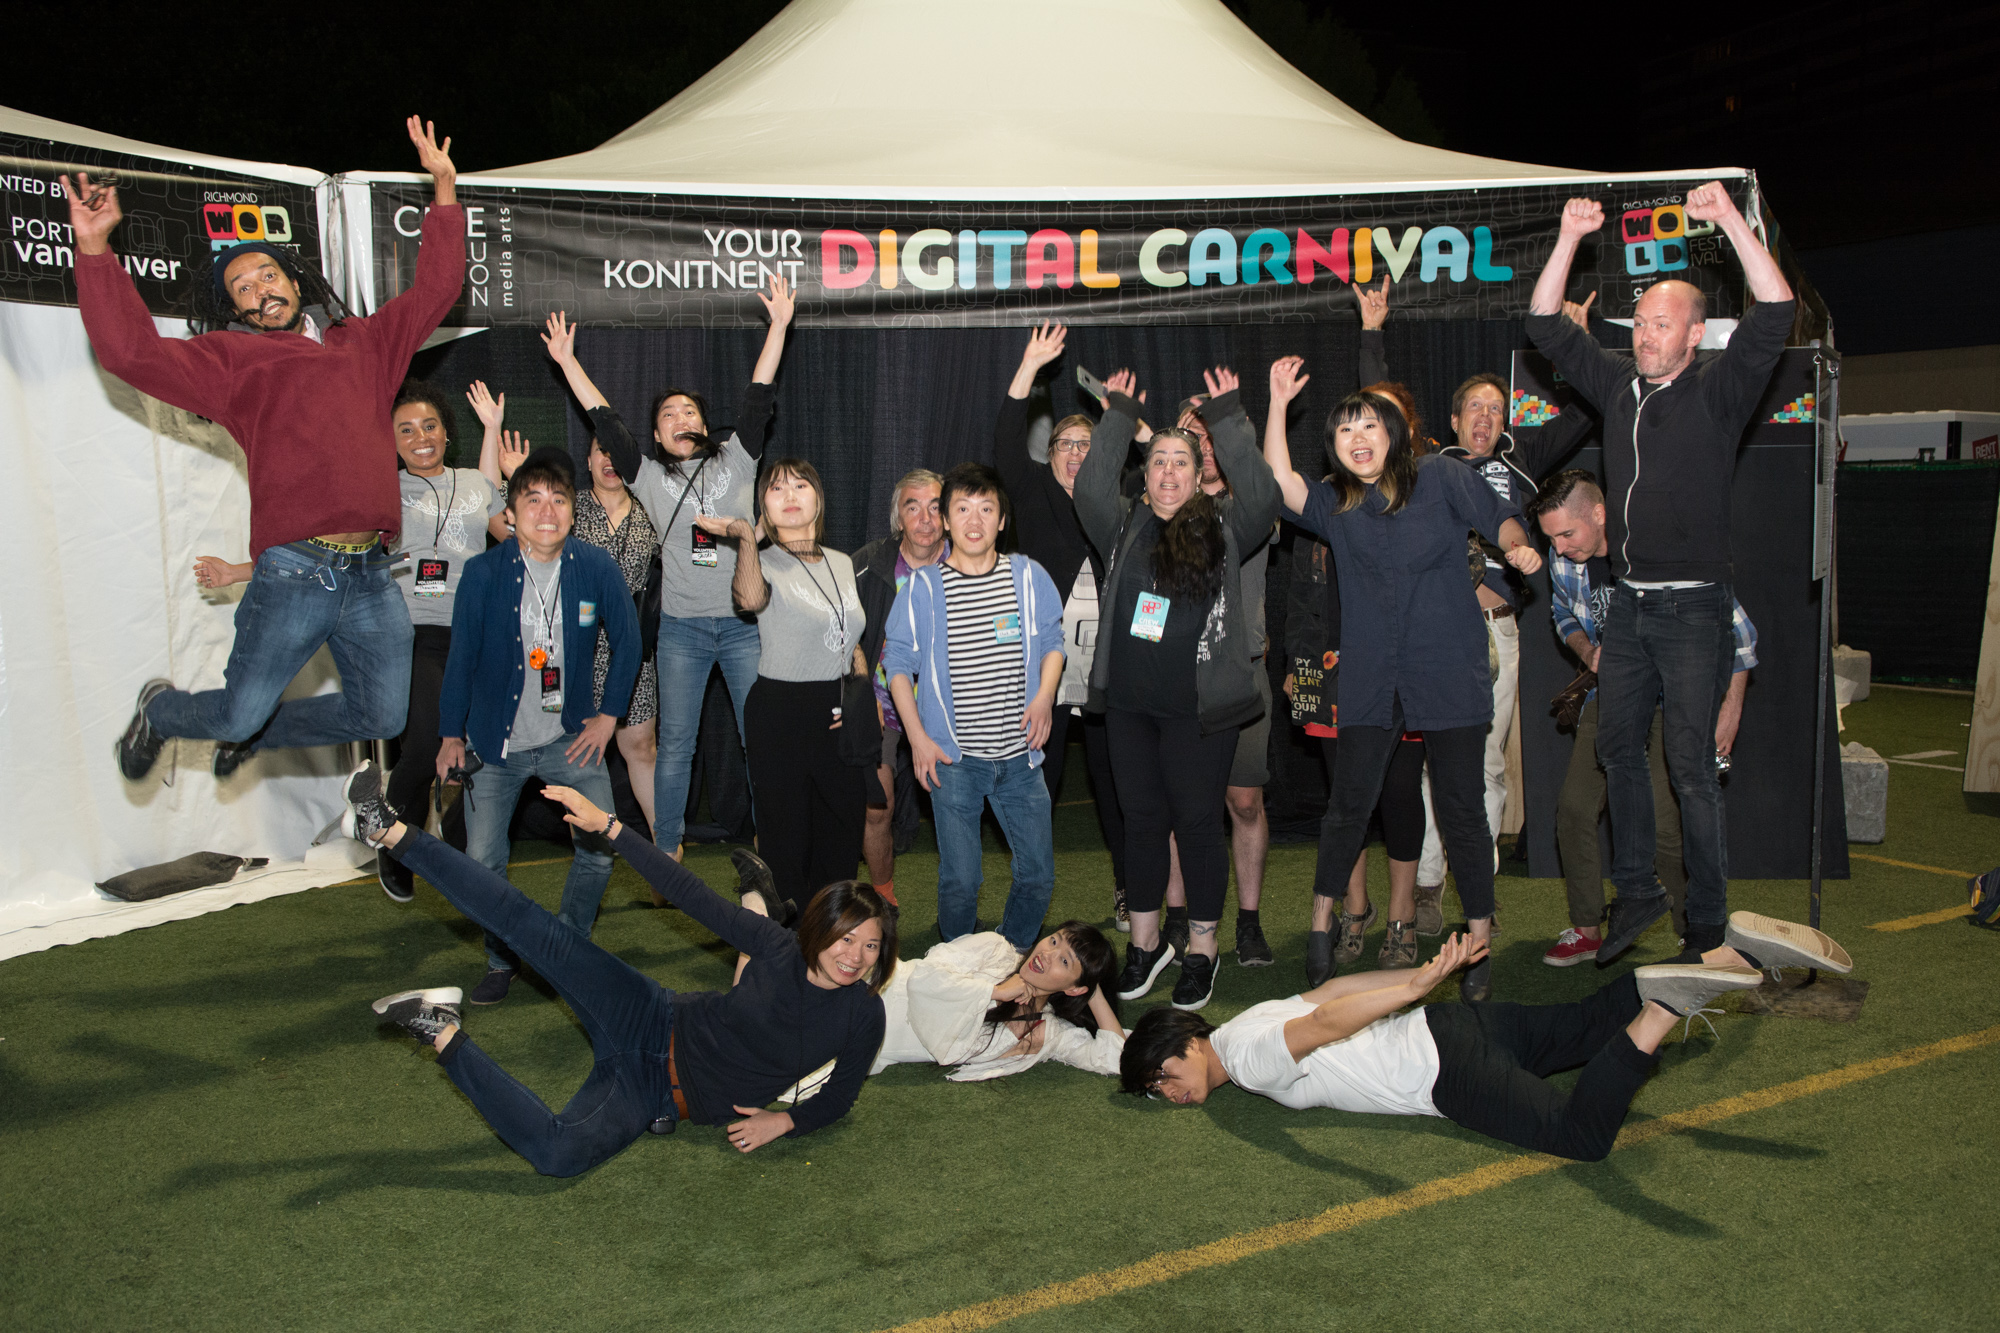 Artists at Digital Carnival, 2017. Ash Tanasiychuk photo